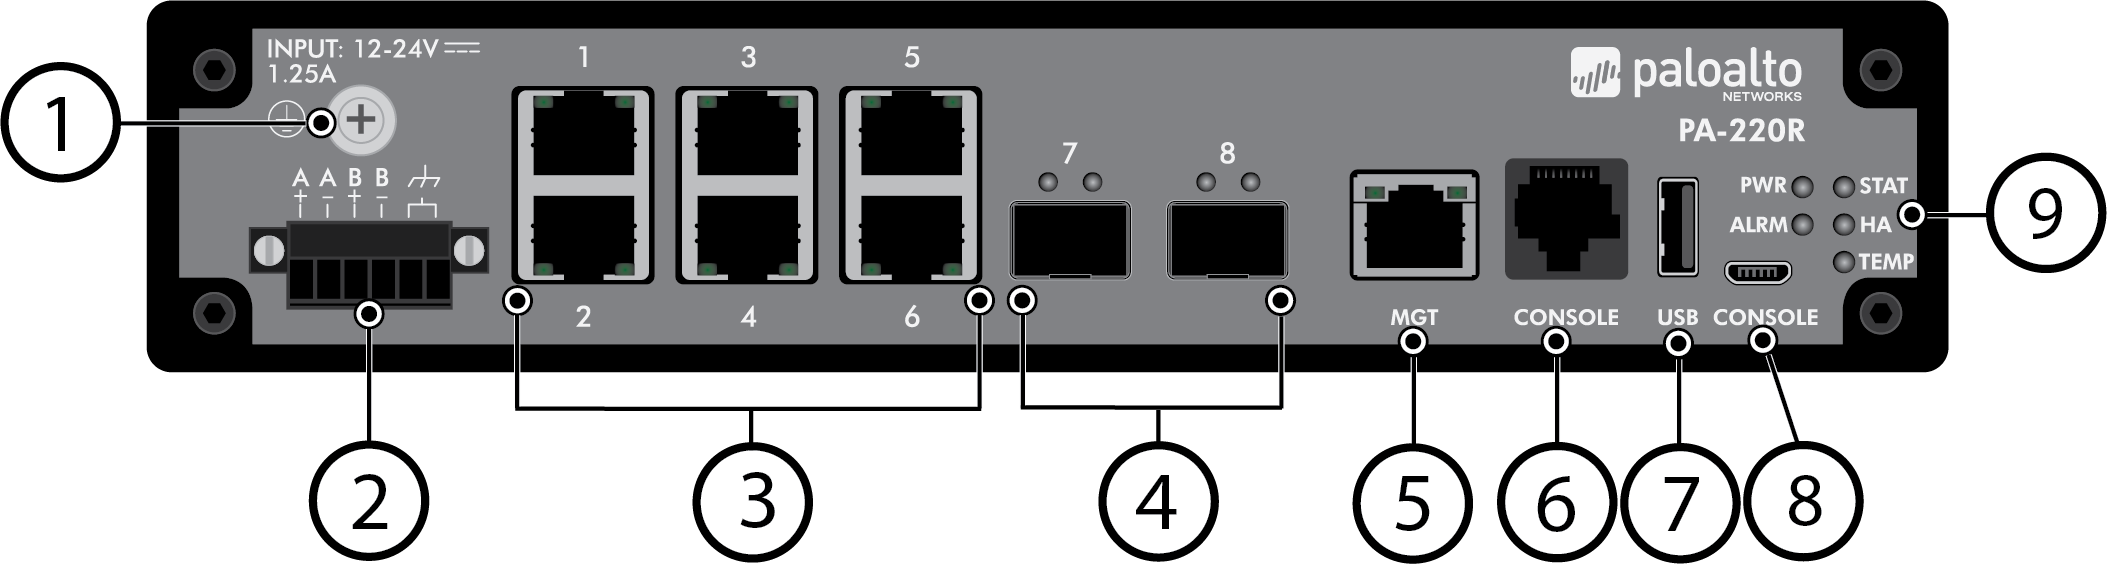 front-panel-220R.png